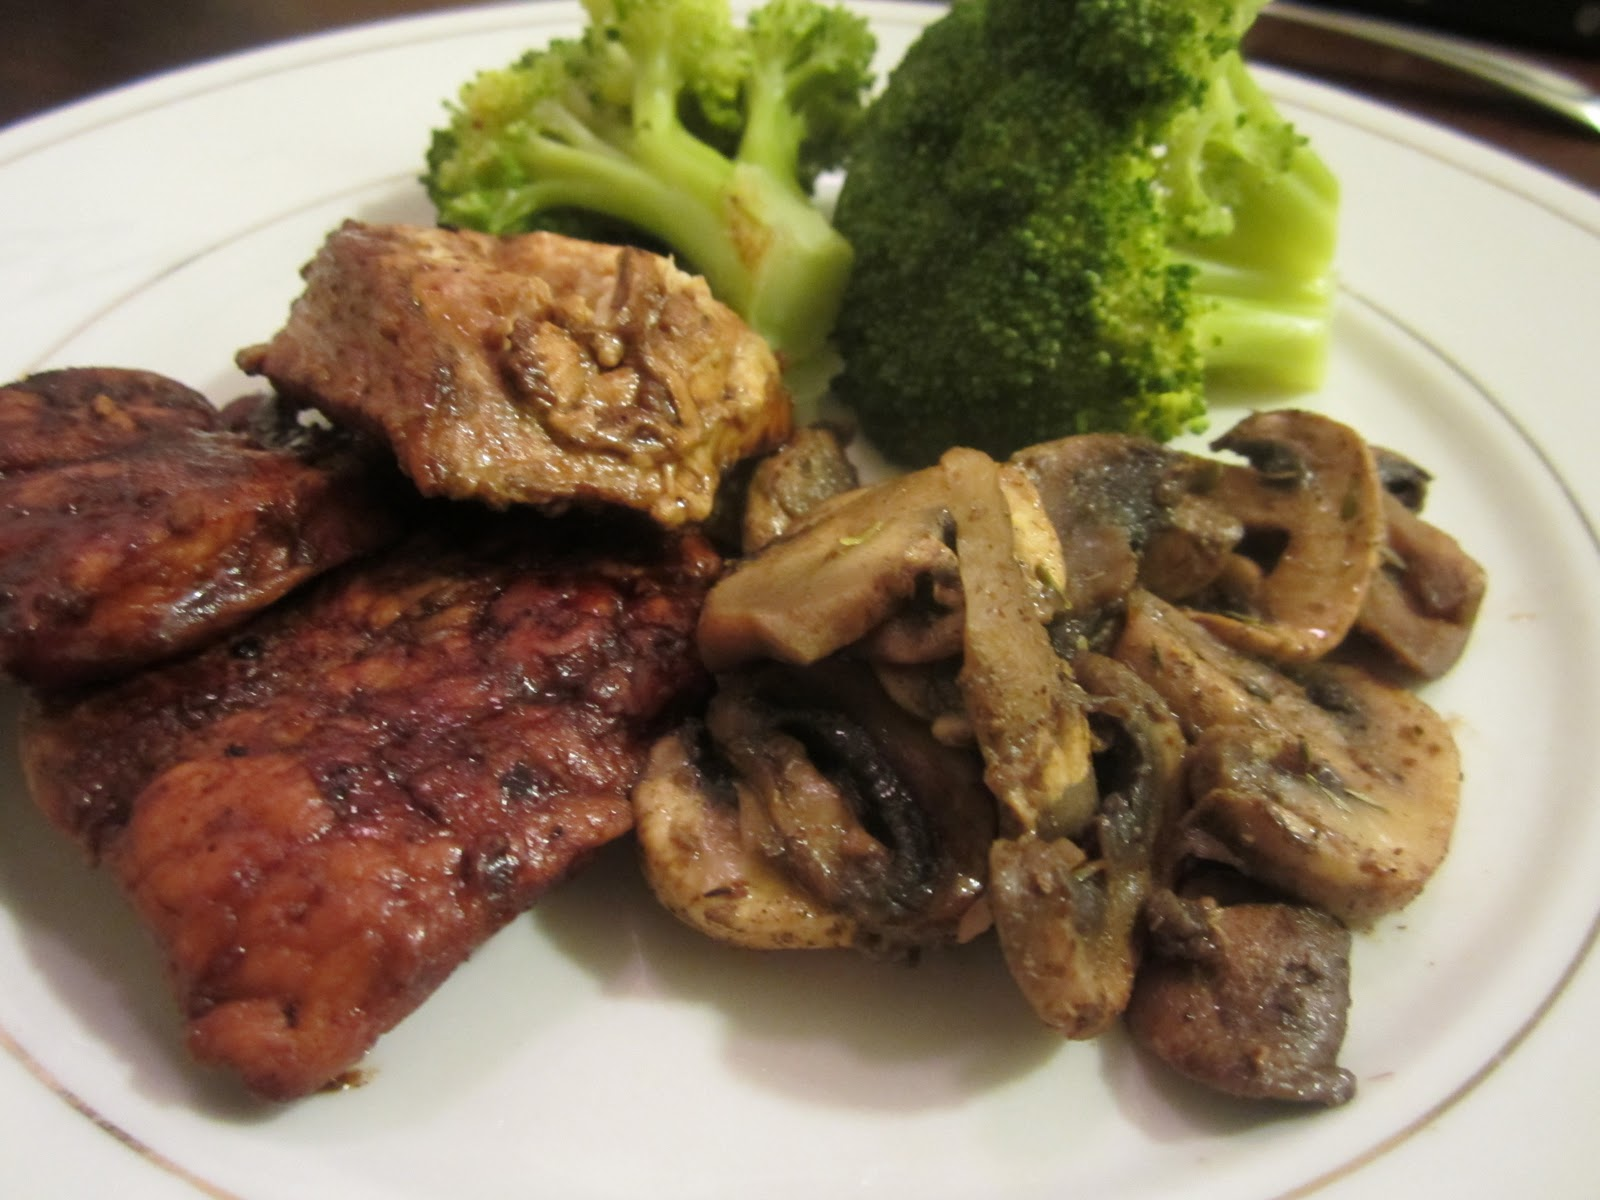 ... : http://www.food.com/recipe/balsamic-chicken-and-mushrooms-54726